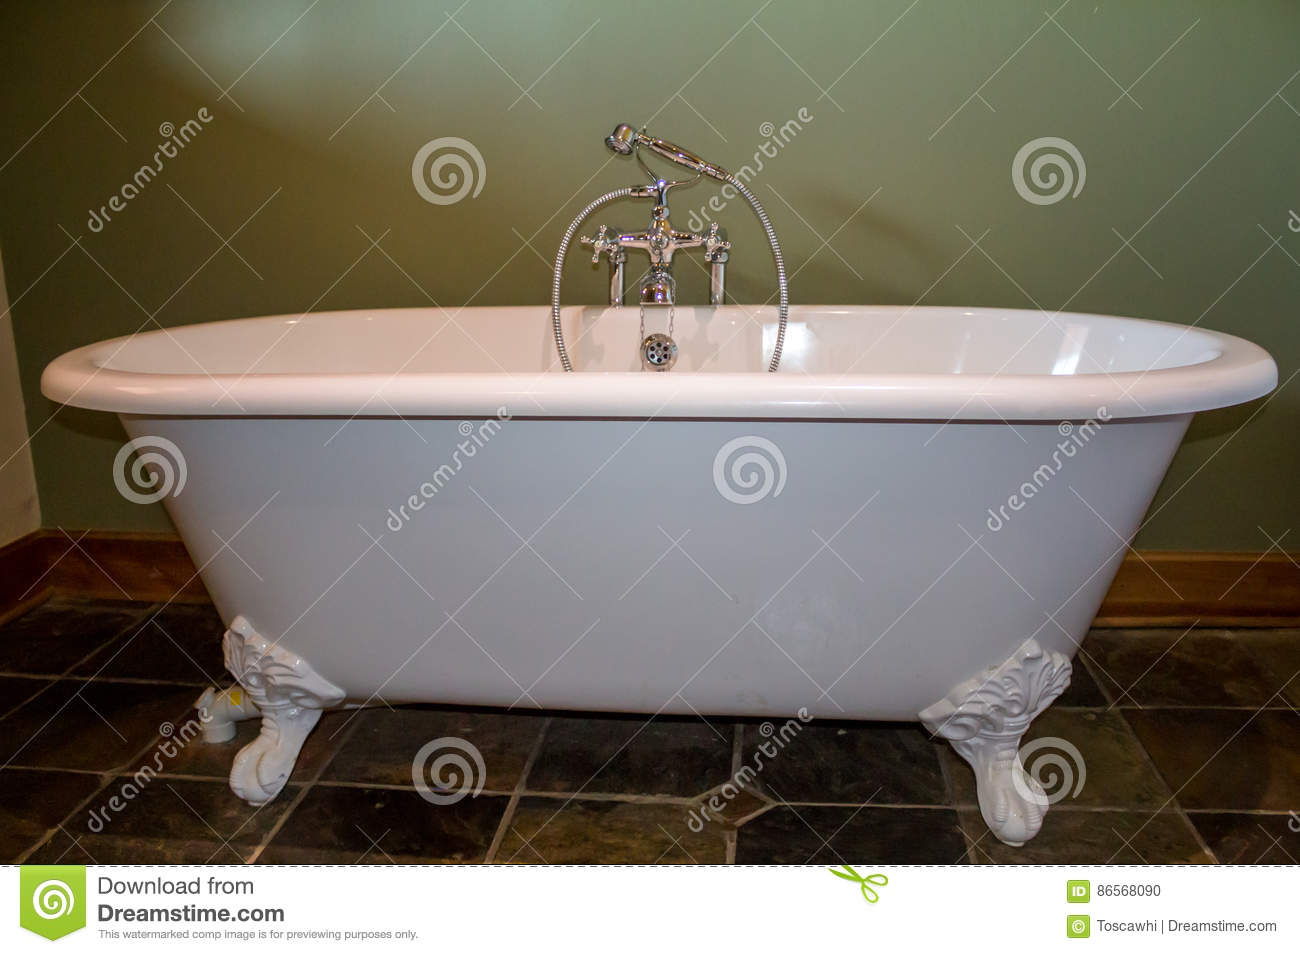 Old Type Footed Bath Tub In Olive Green Bathroom Stock Photo - Image ...